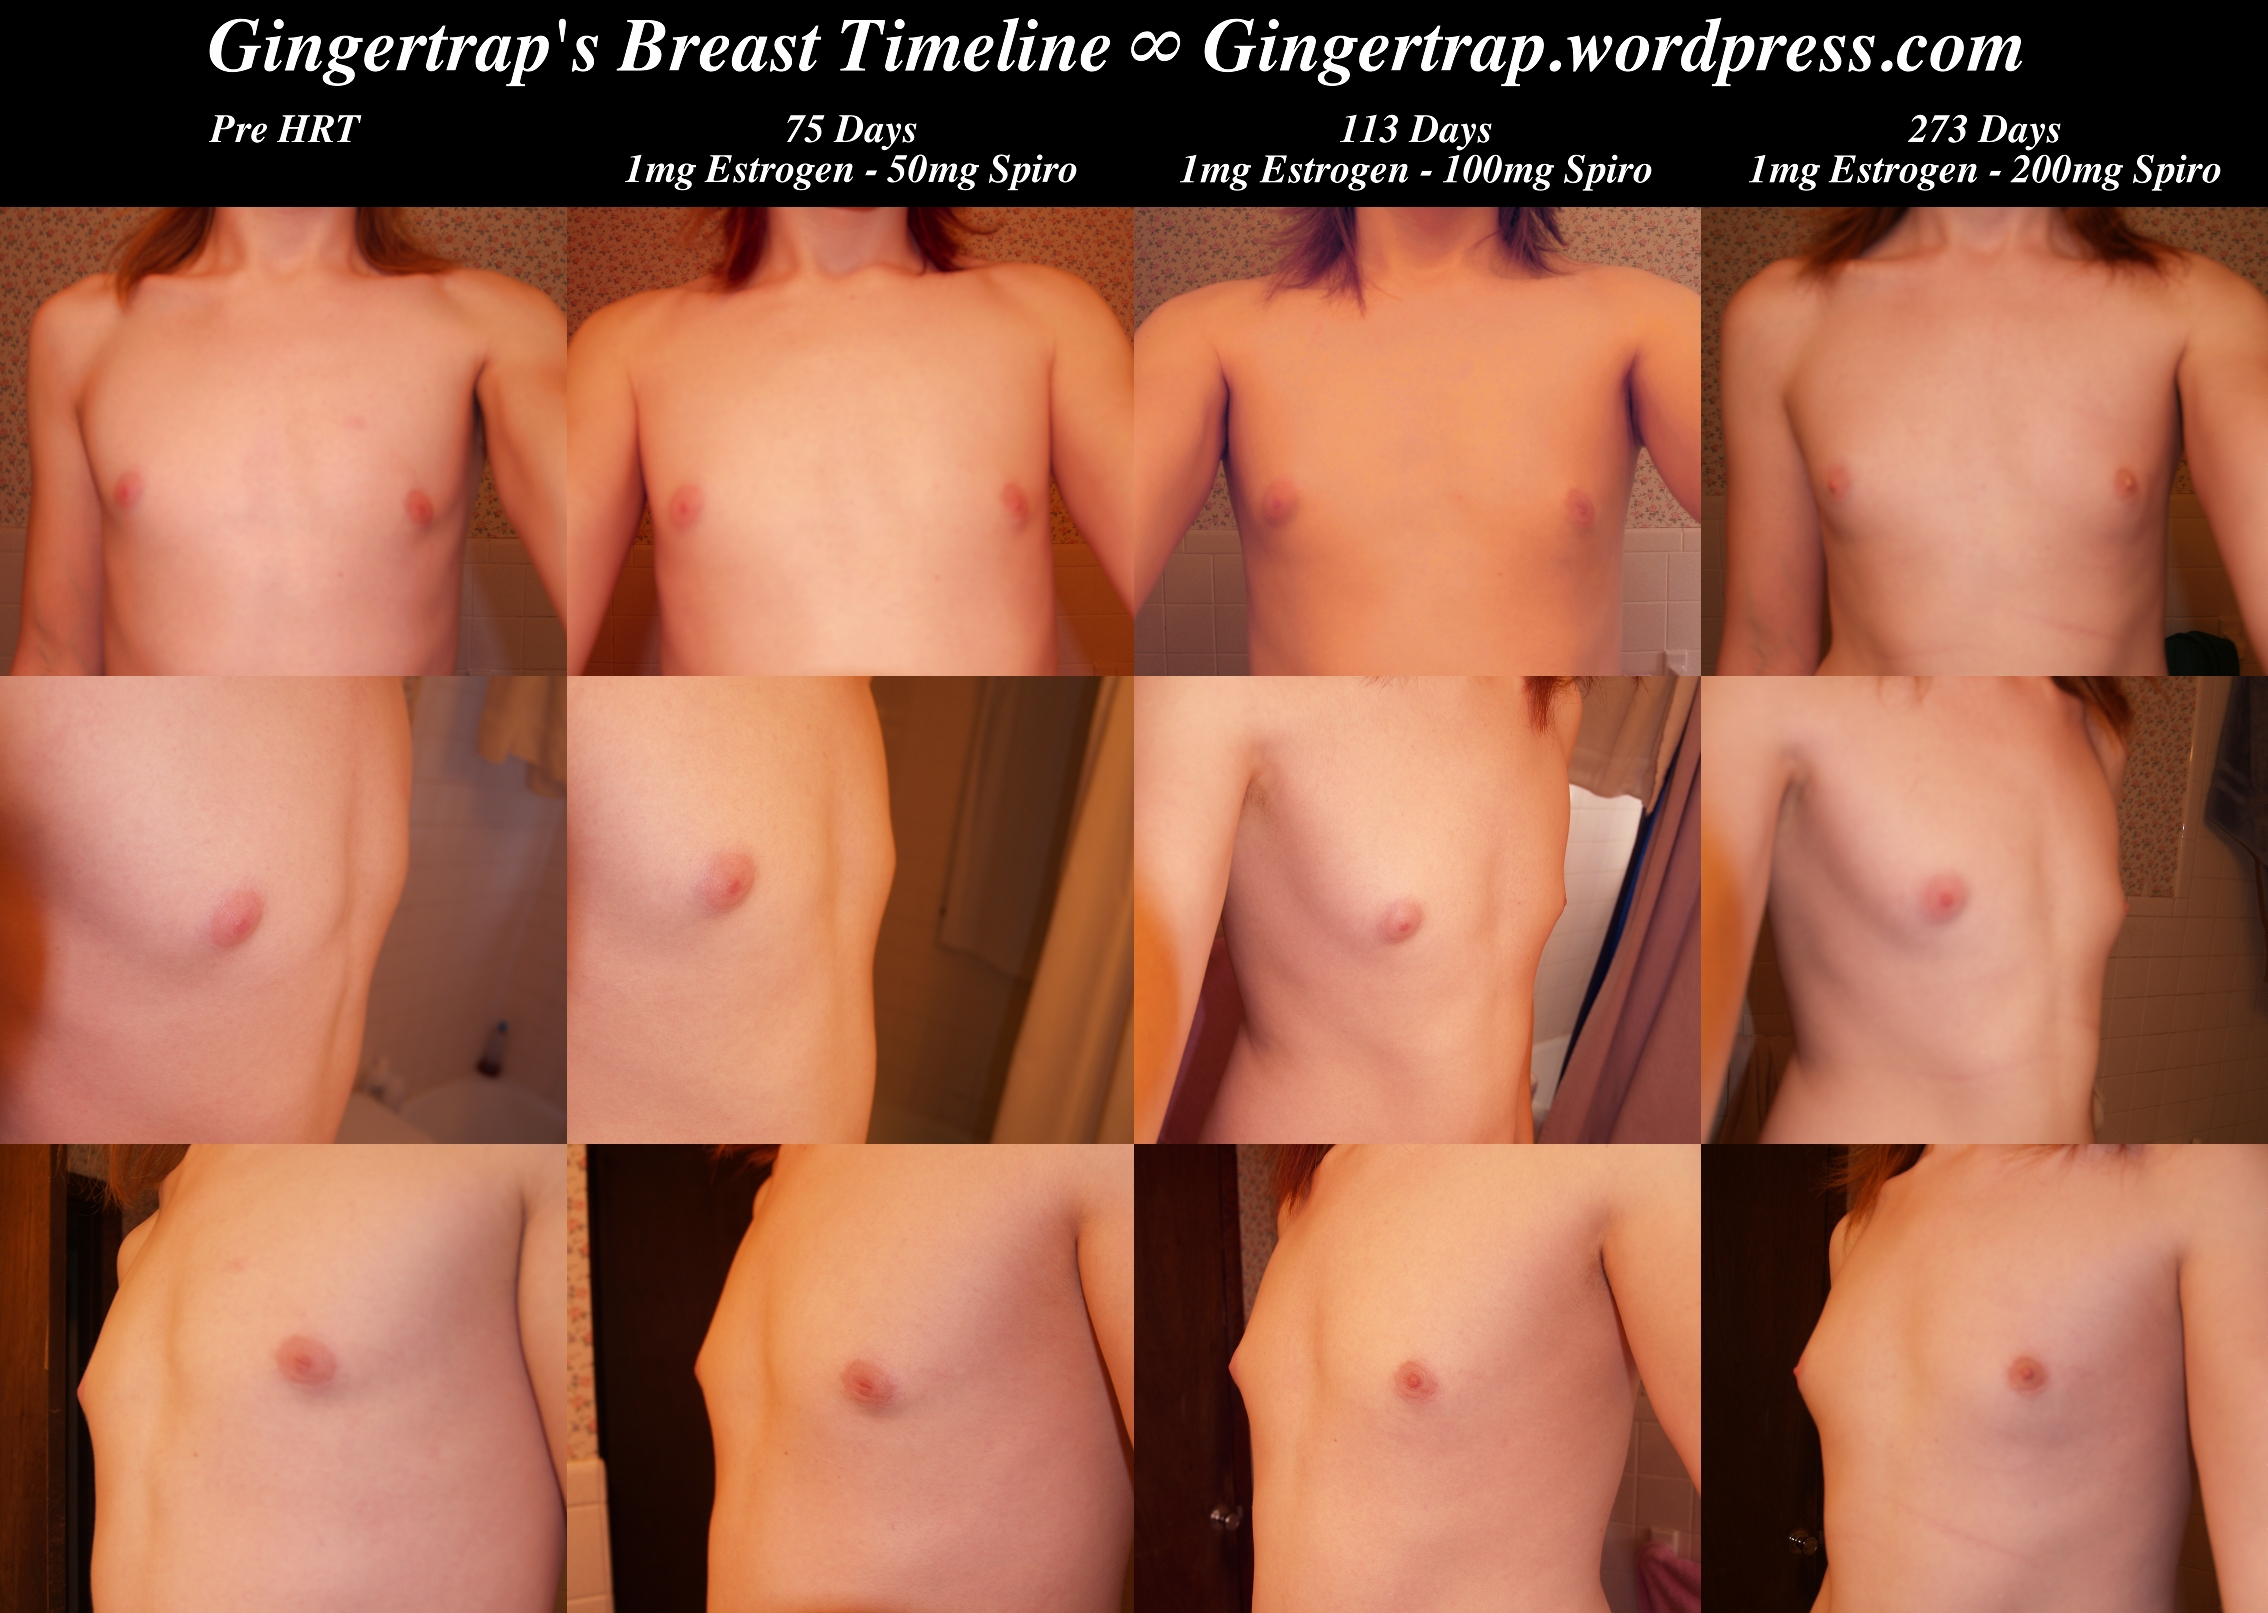 lapse breast time female Nude development